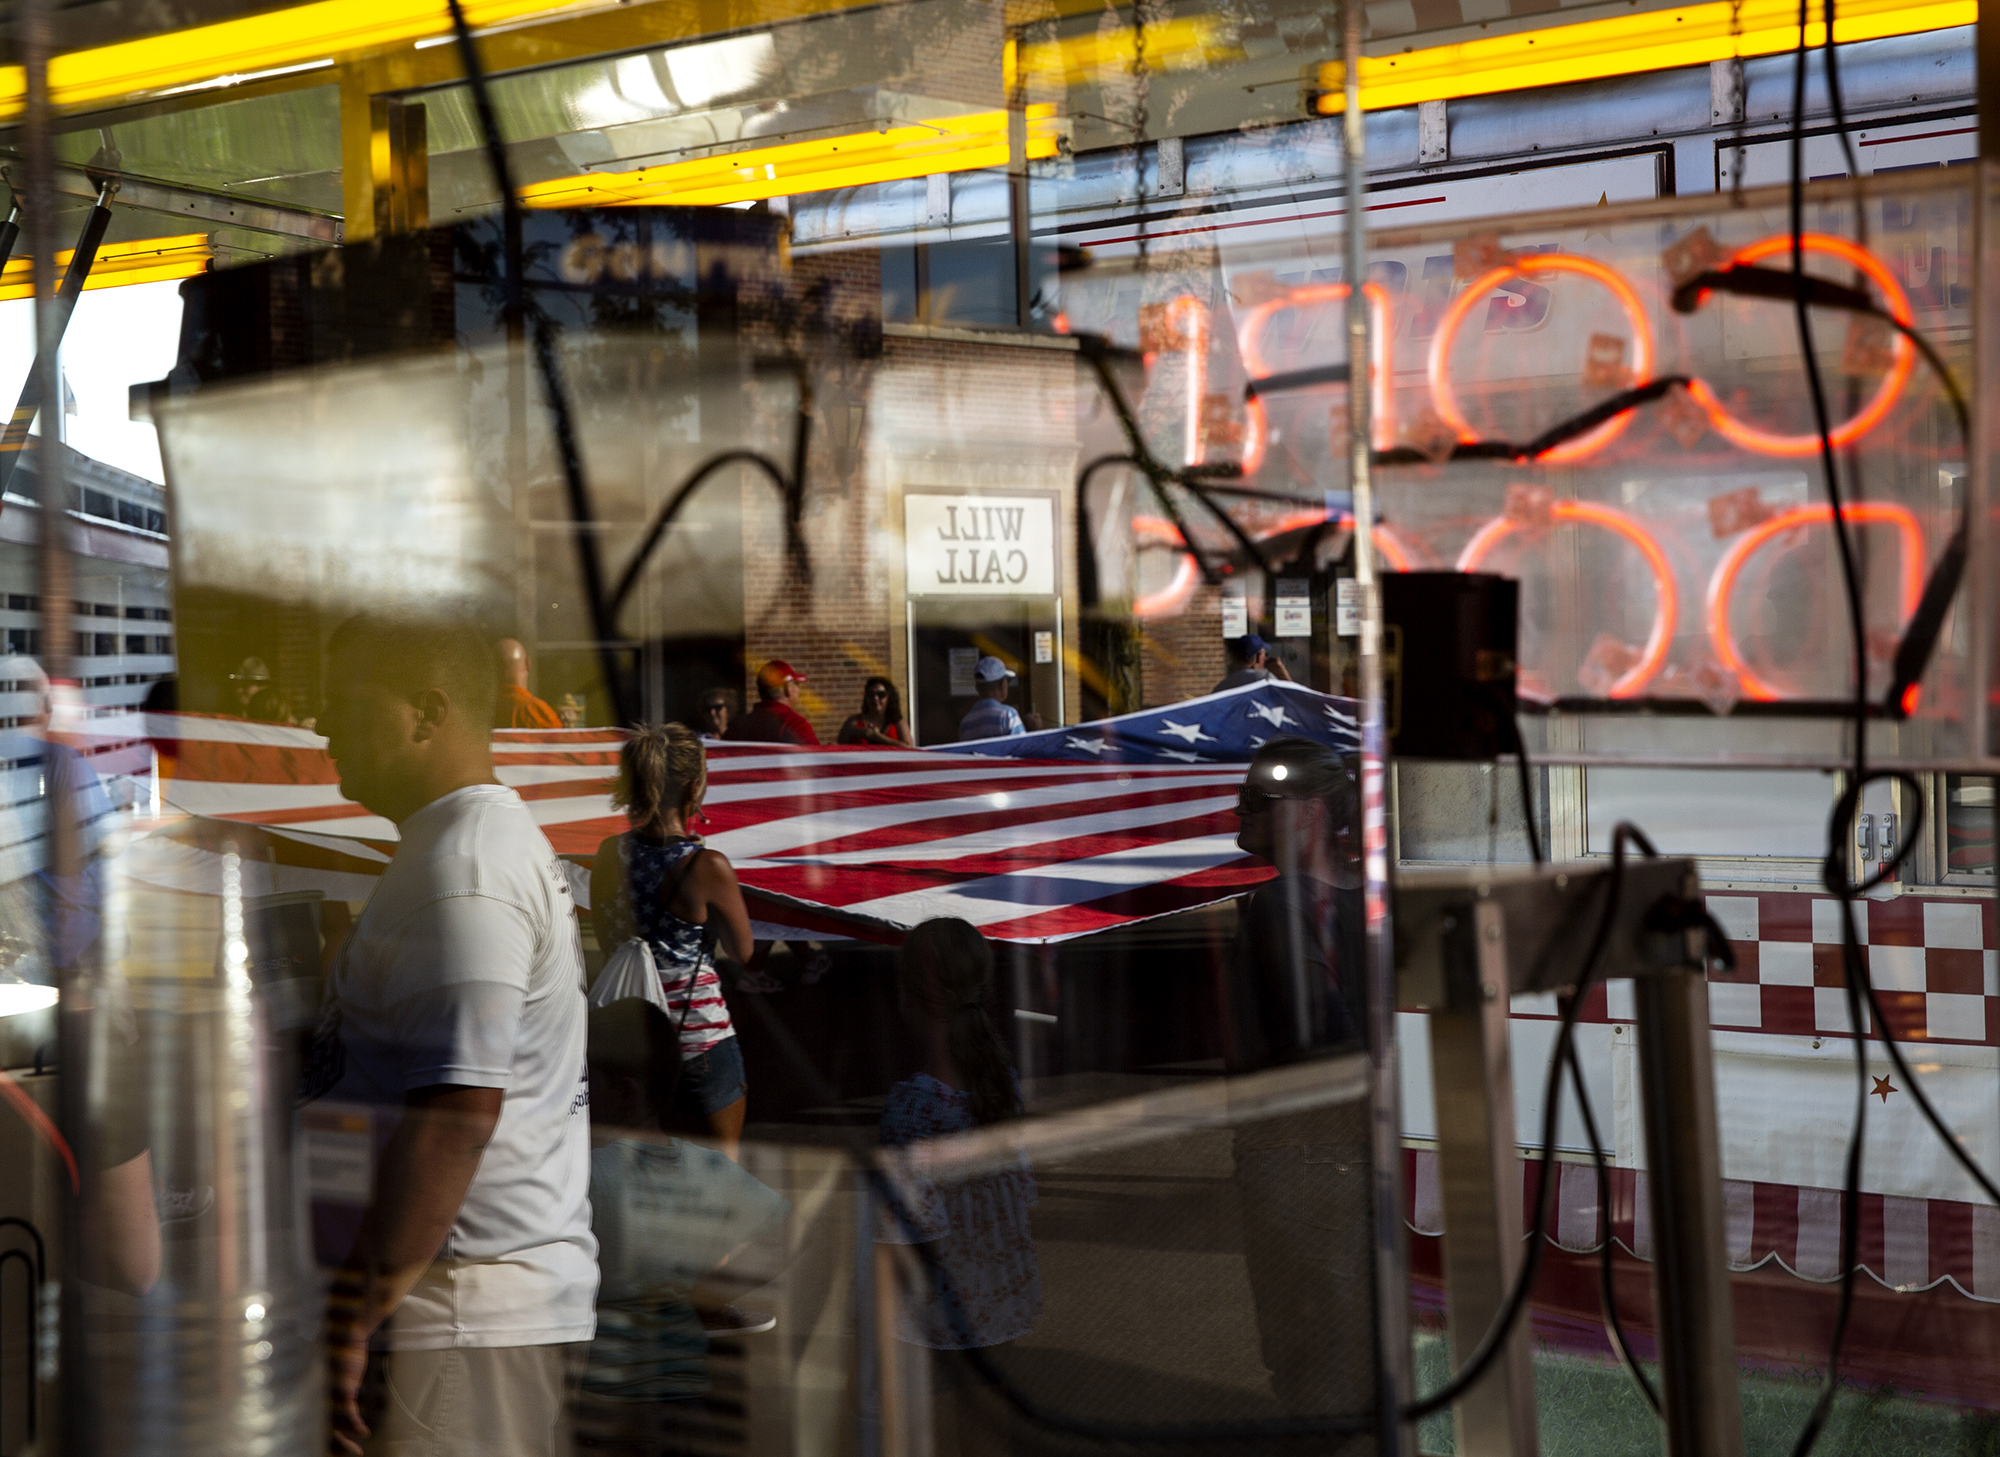 An American flag presented by the Illinois Elks Lodge 158 in Springfield and carried through the fairgrounds, is reflected in a concession stand during the Illinois State Fair Twilight Parade Thursday, Aug. 9, 2018 on the Illinois State Fairgrounds in Springfield, Ill. [Rich Saal/The State Journal-Register]